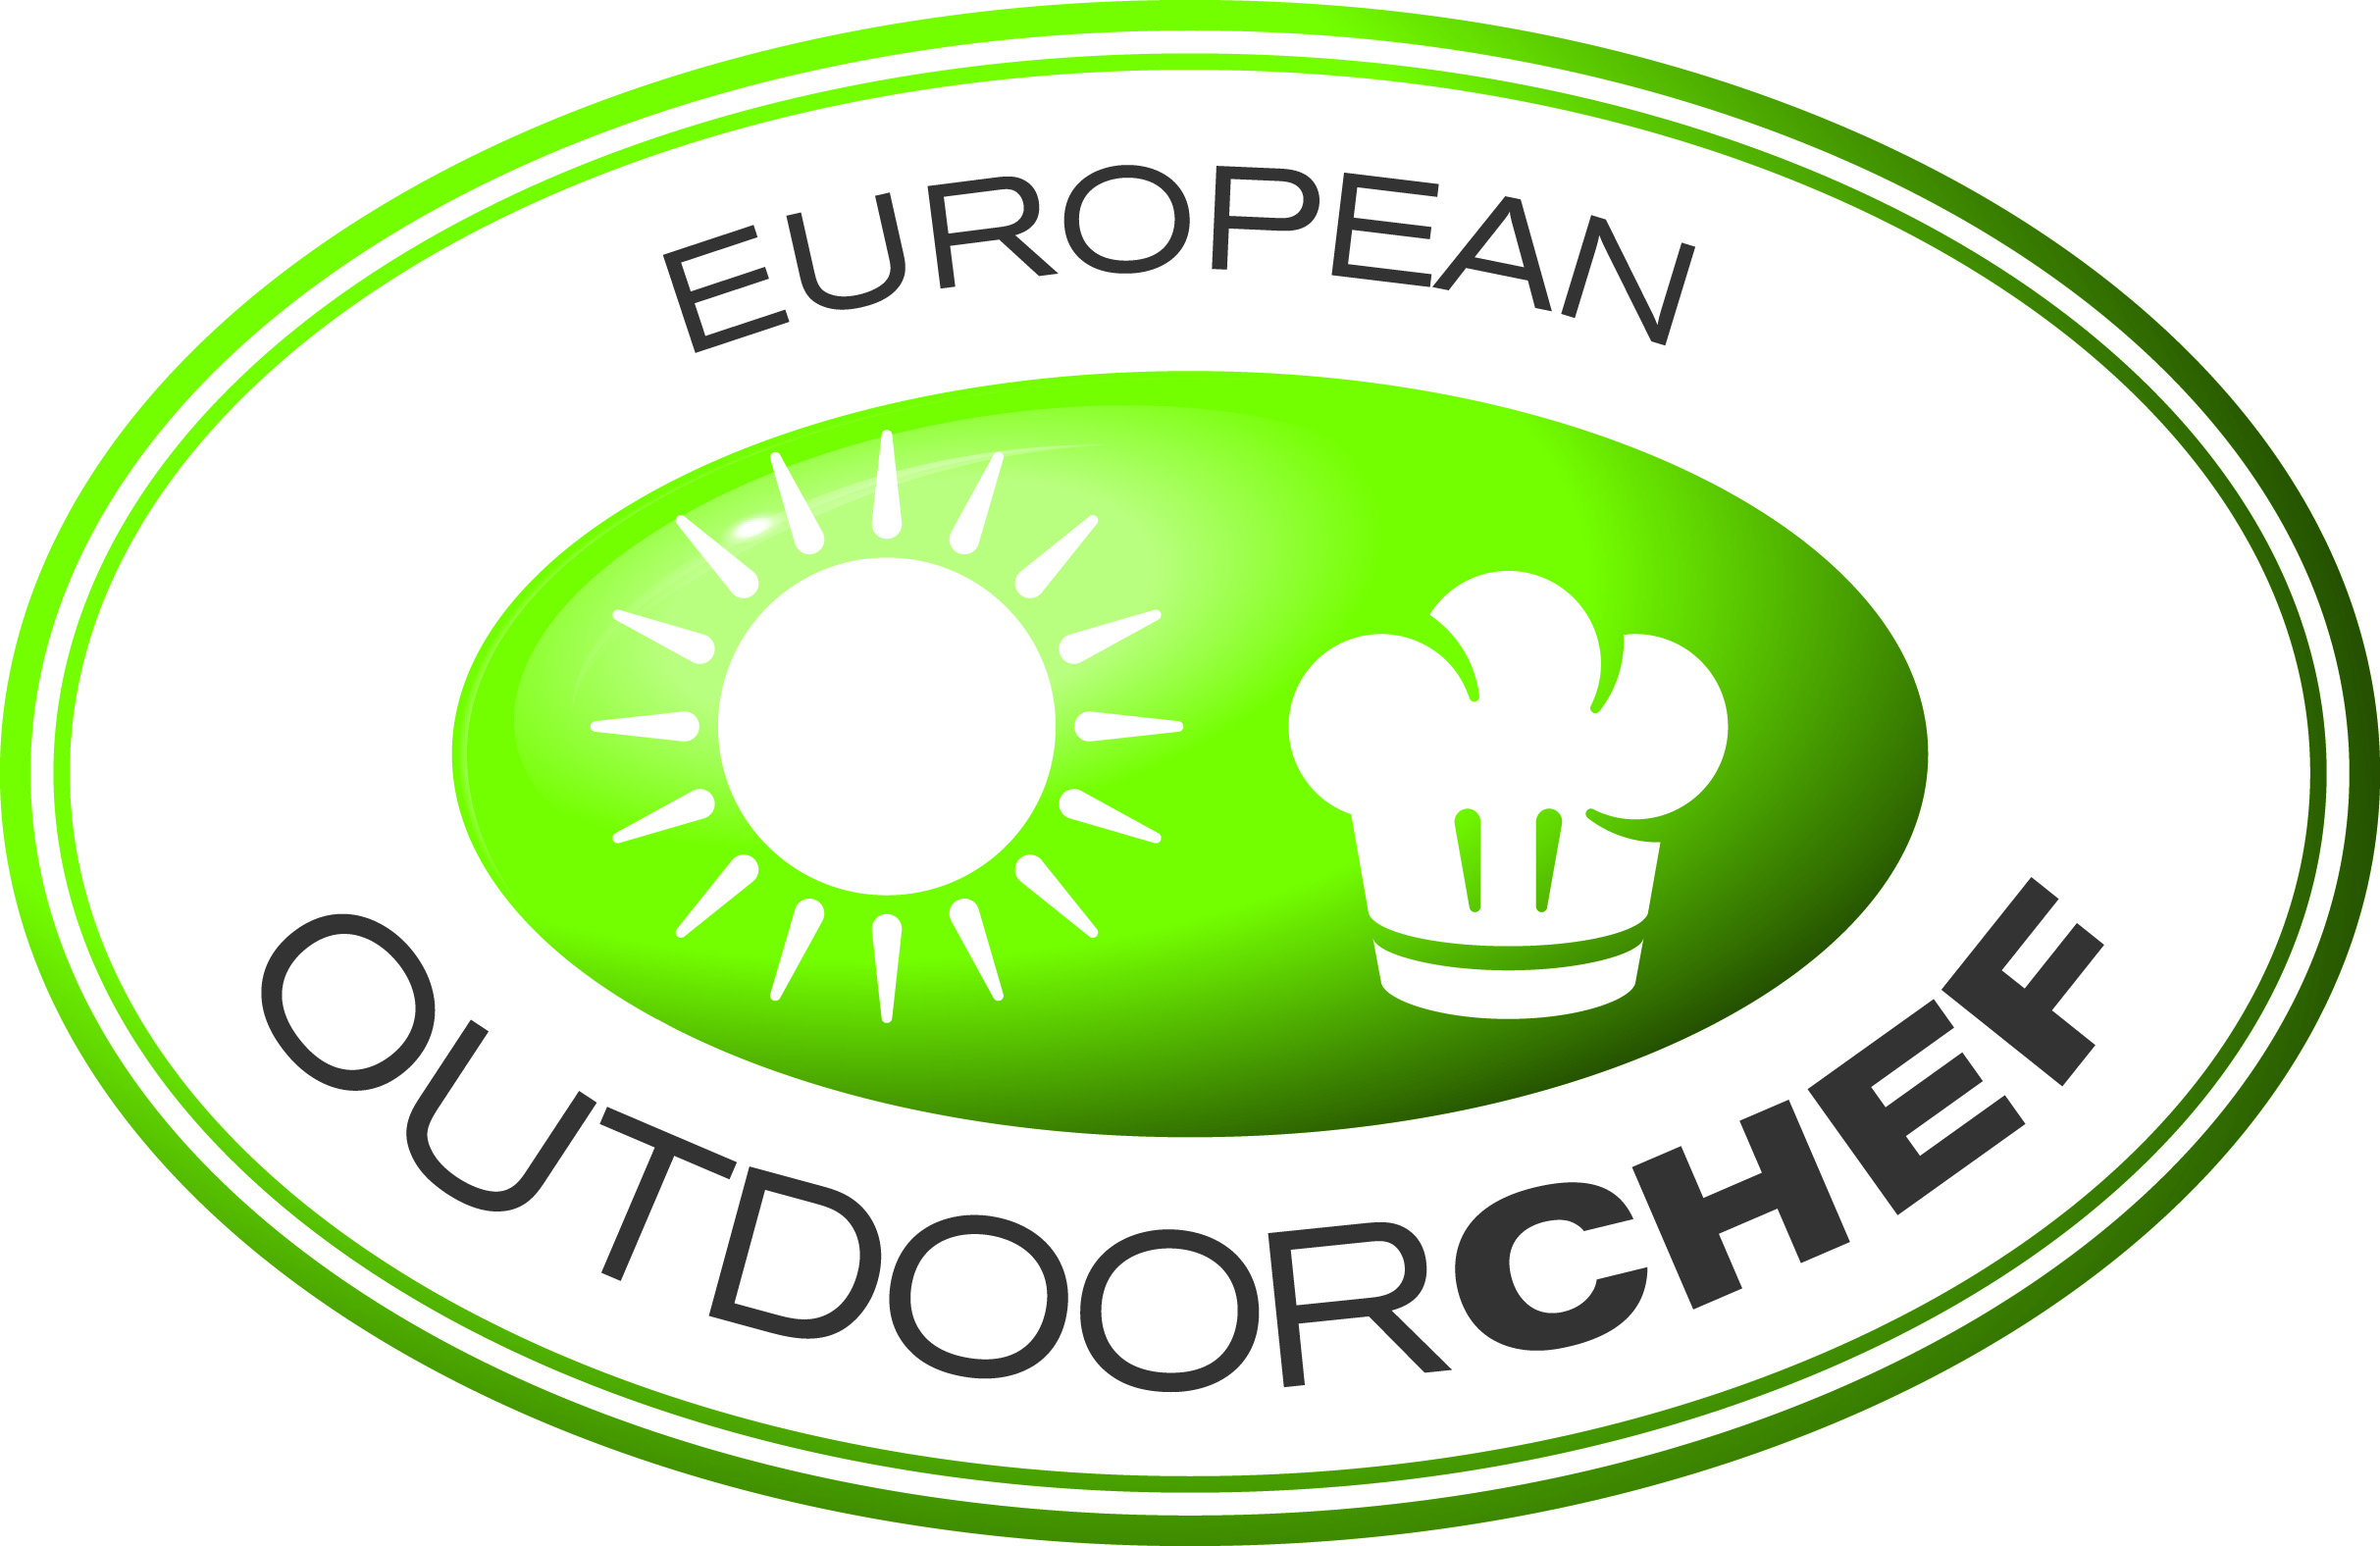 OUTDOORCHEF-logo_2013_CMYK